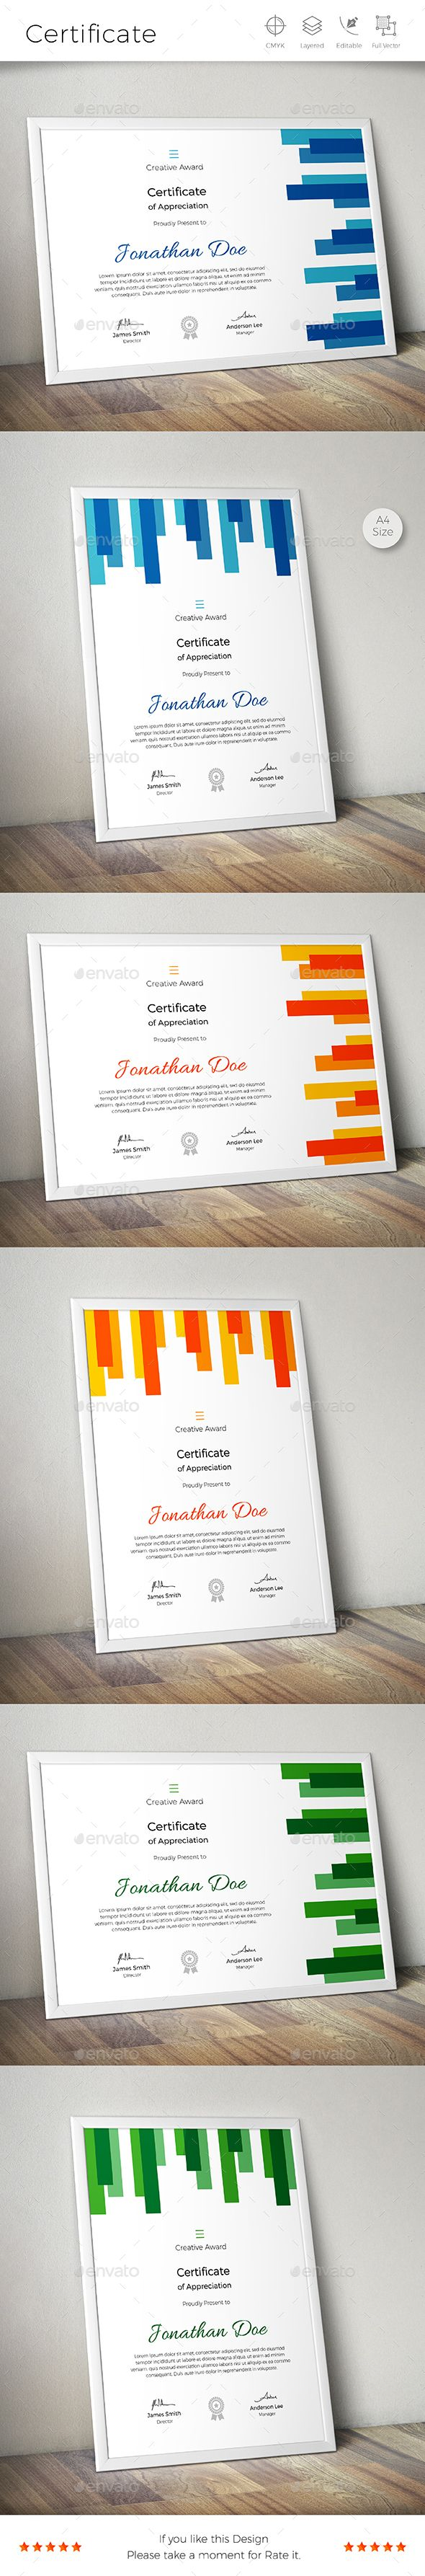 #Certificate - Certificates #Stationery Download here: https://graphicriver.net/item/certificate/18275773?ref=alena994